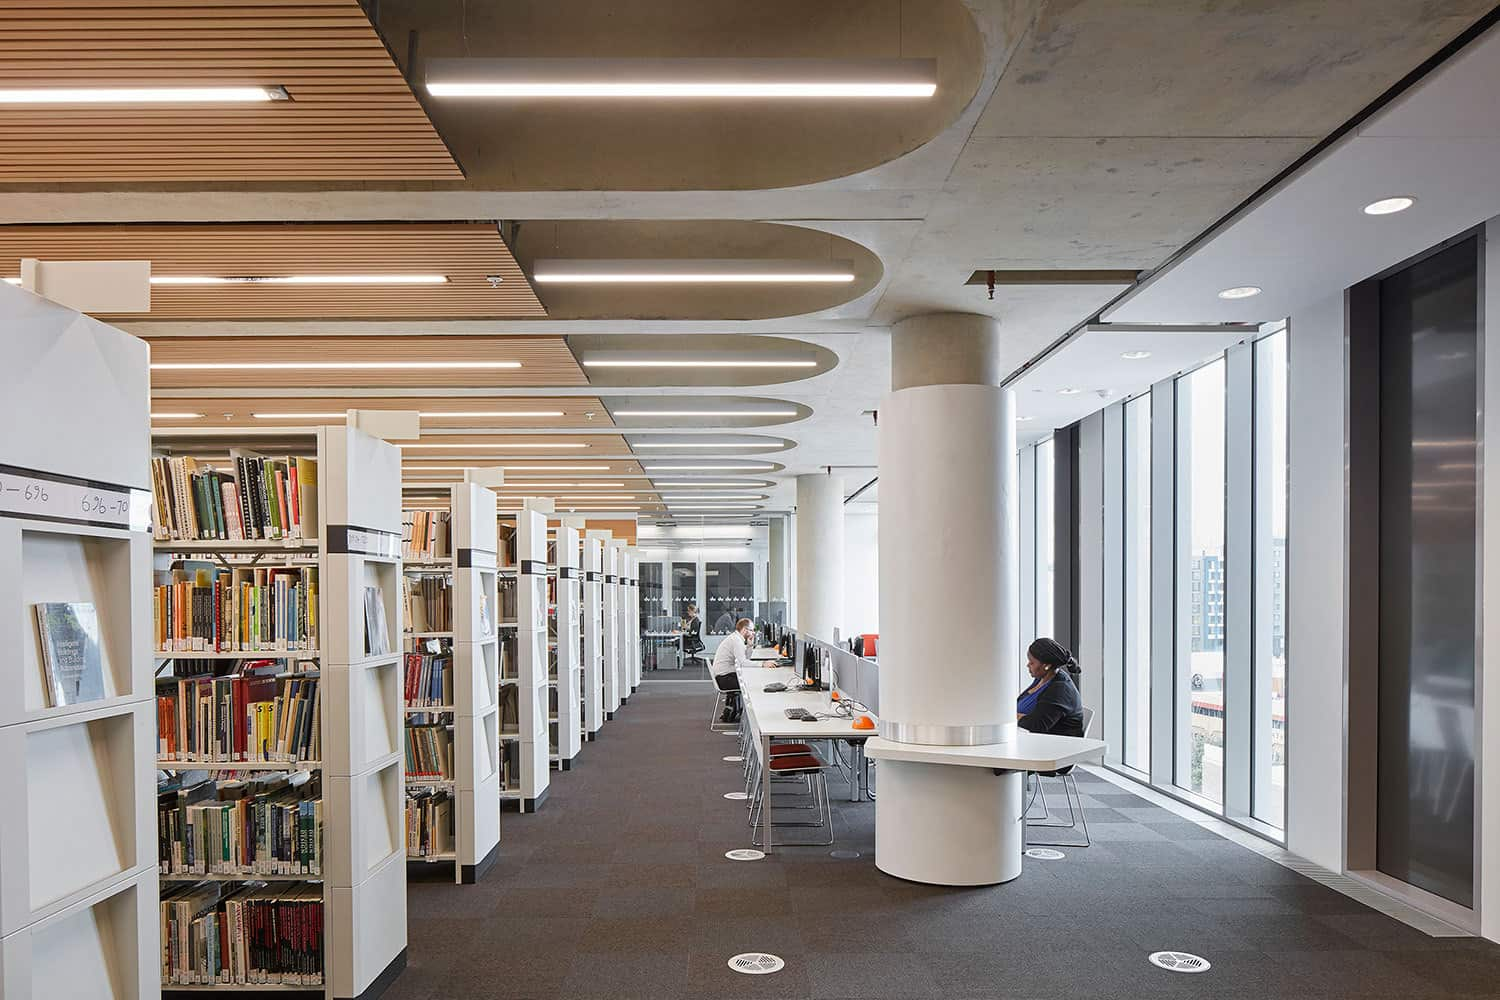 University of Bedfordshire Library